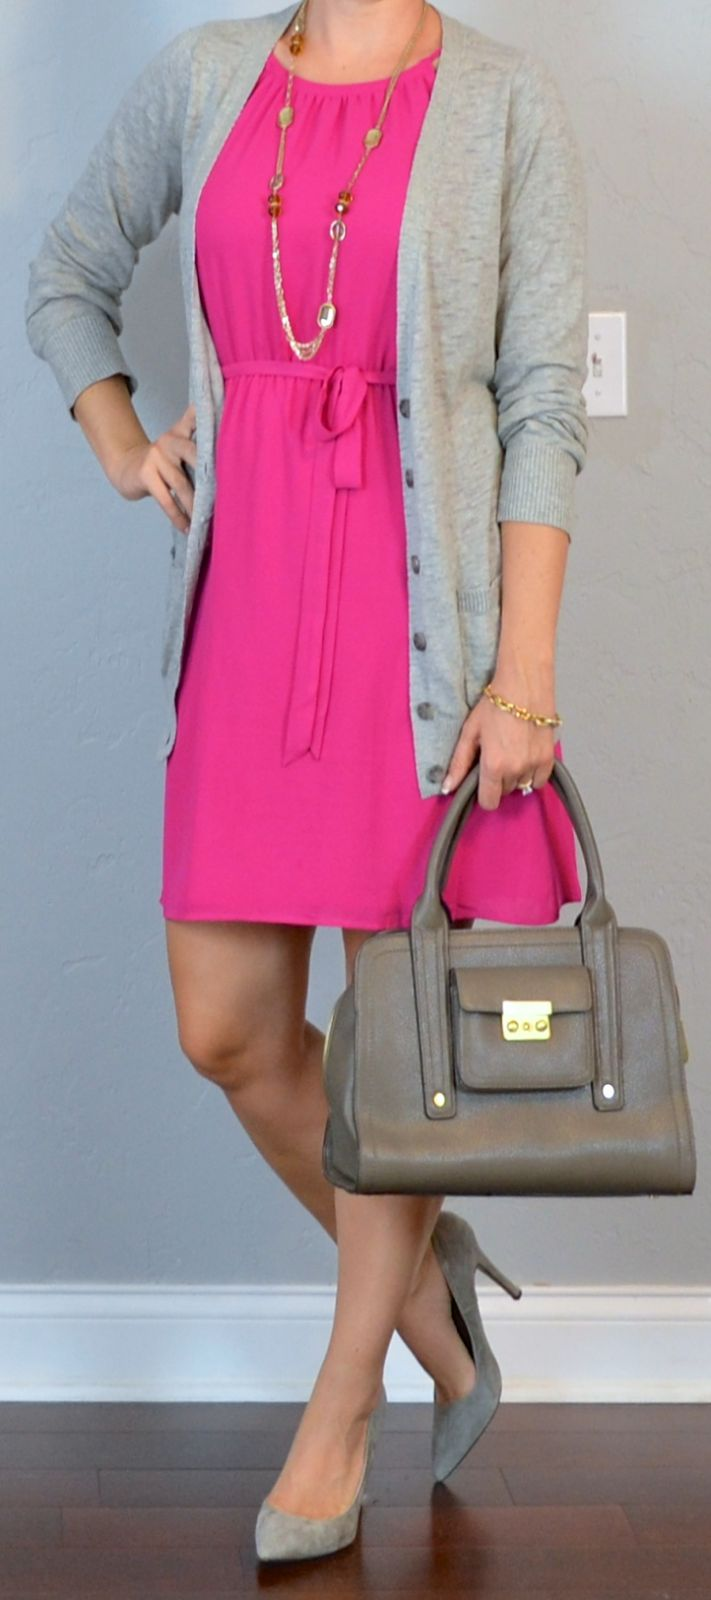 outstanding gray dress outfit 10